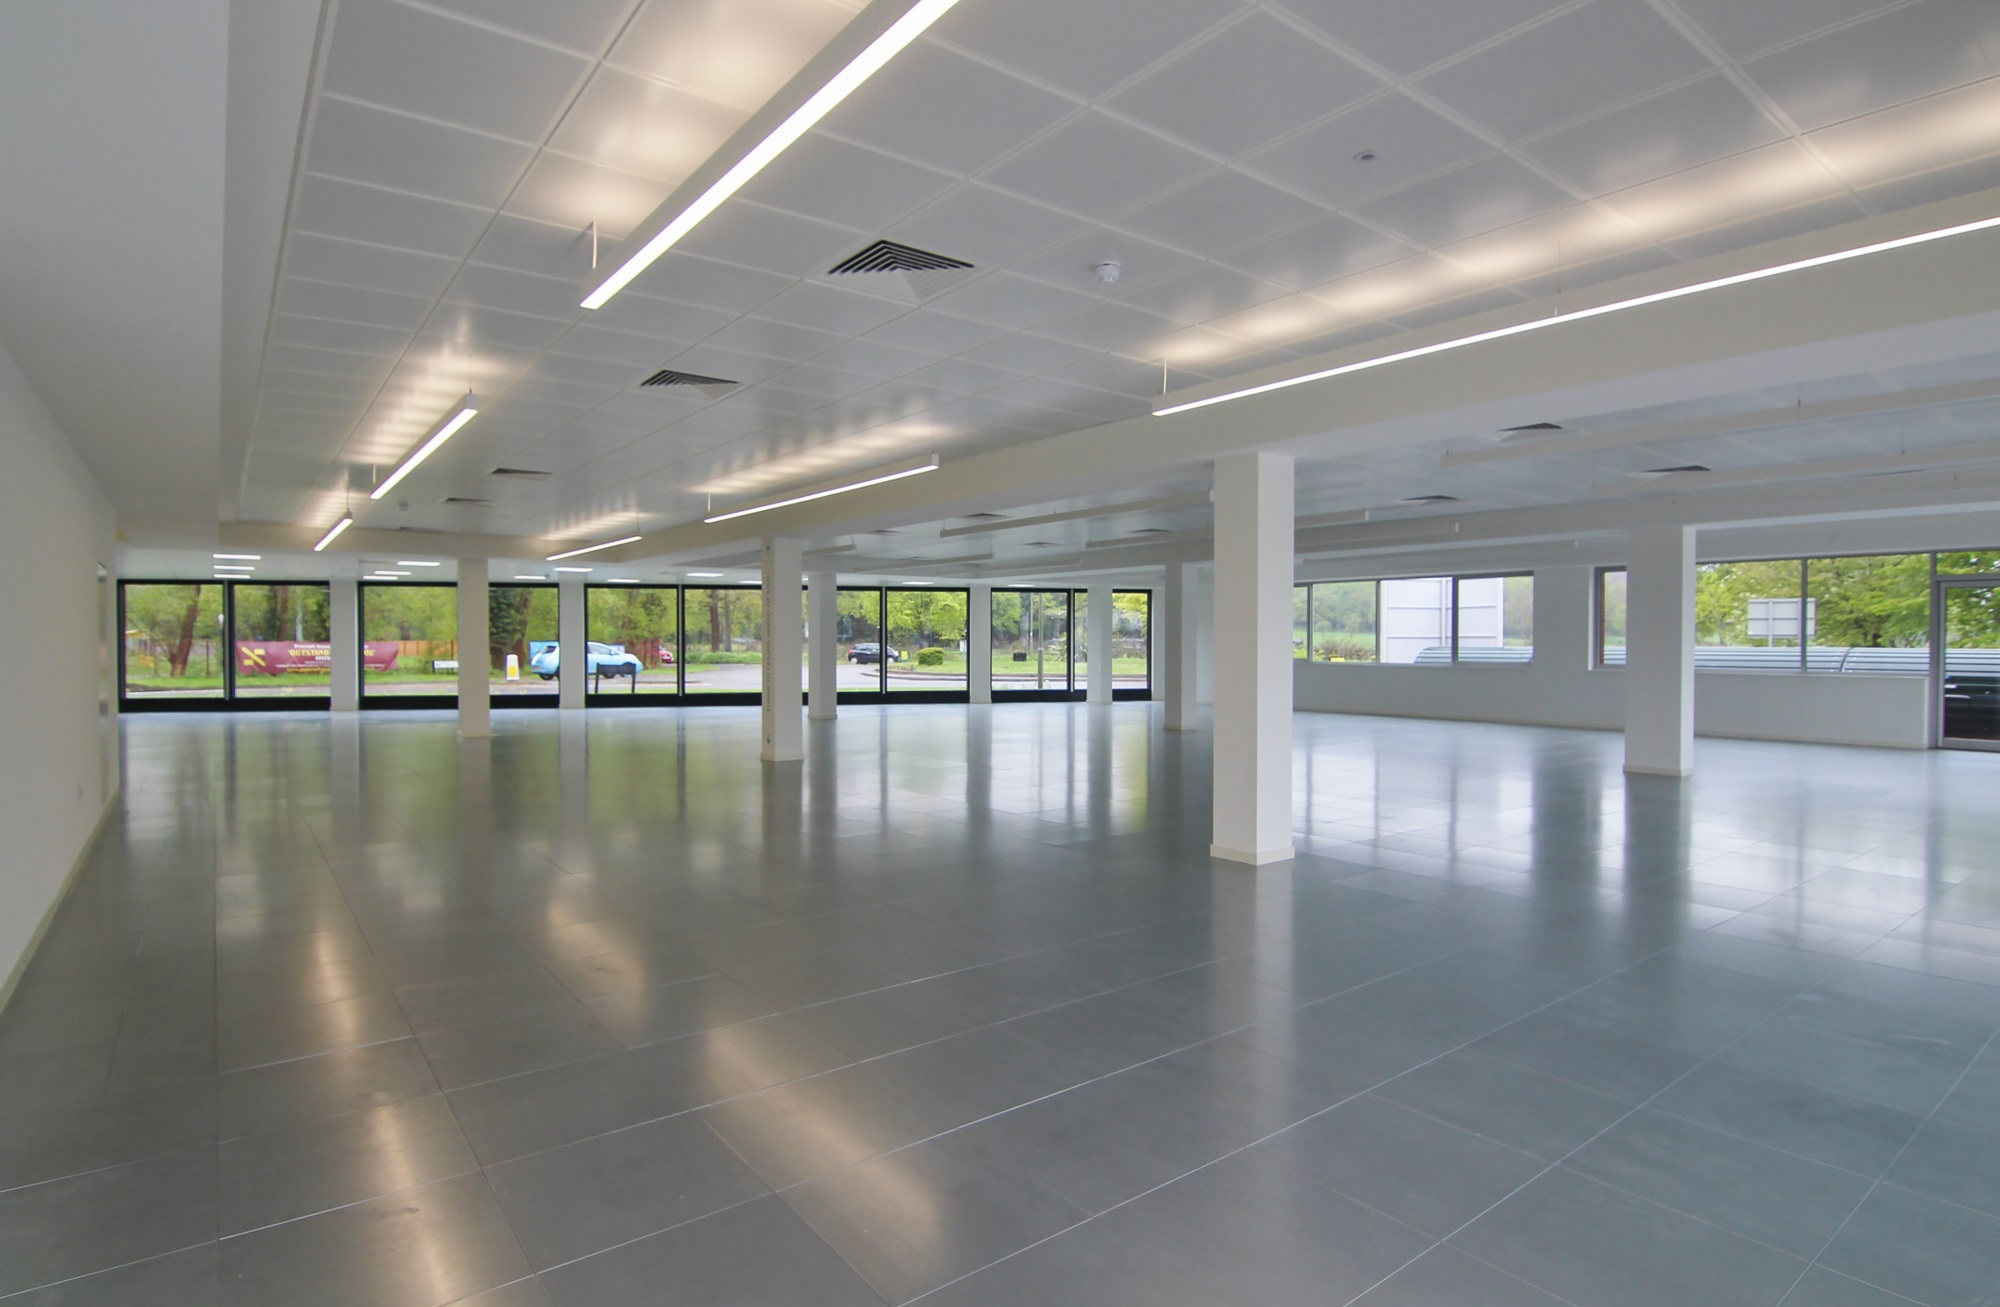 refurbished empty office space with large glass windows